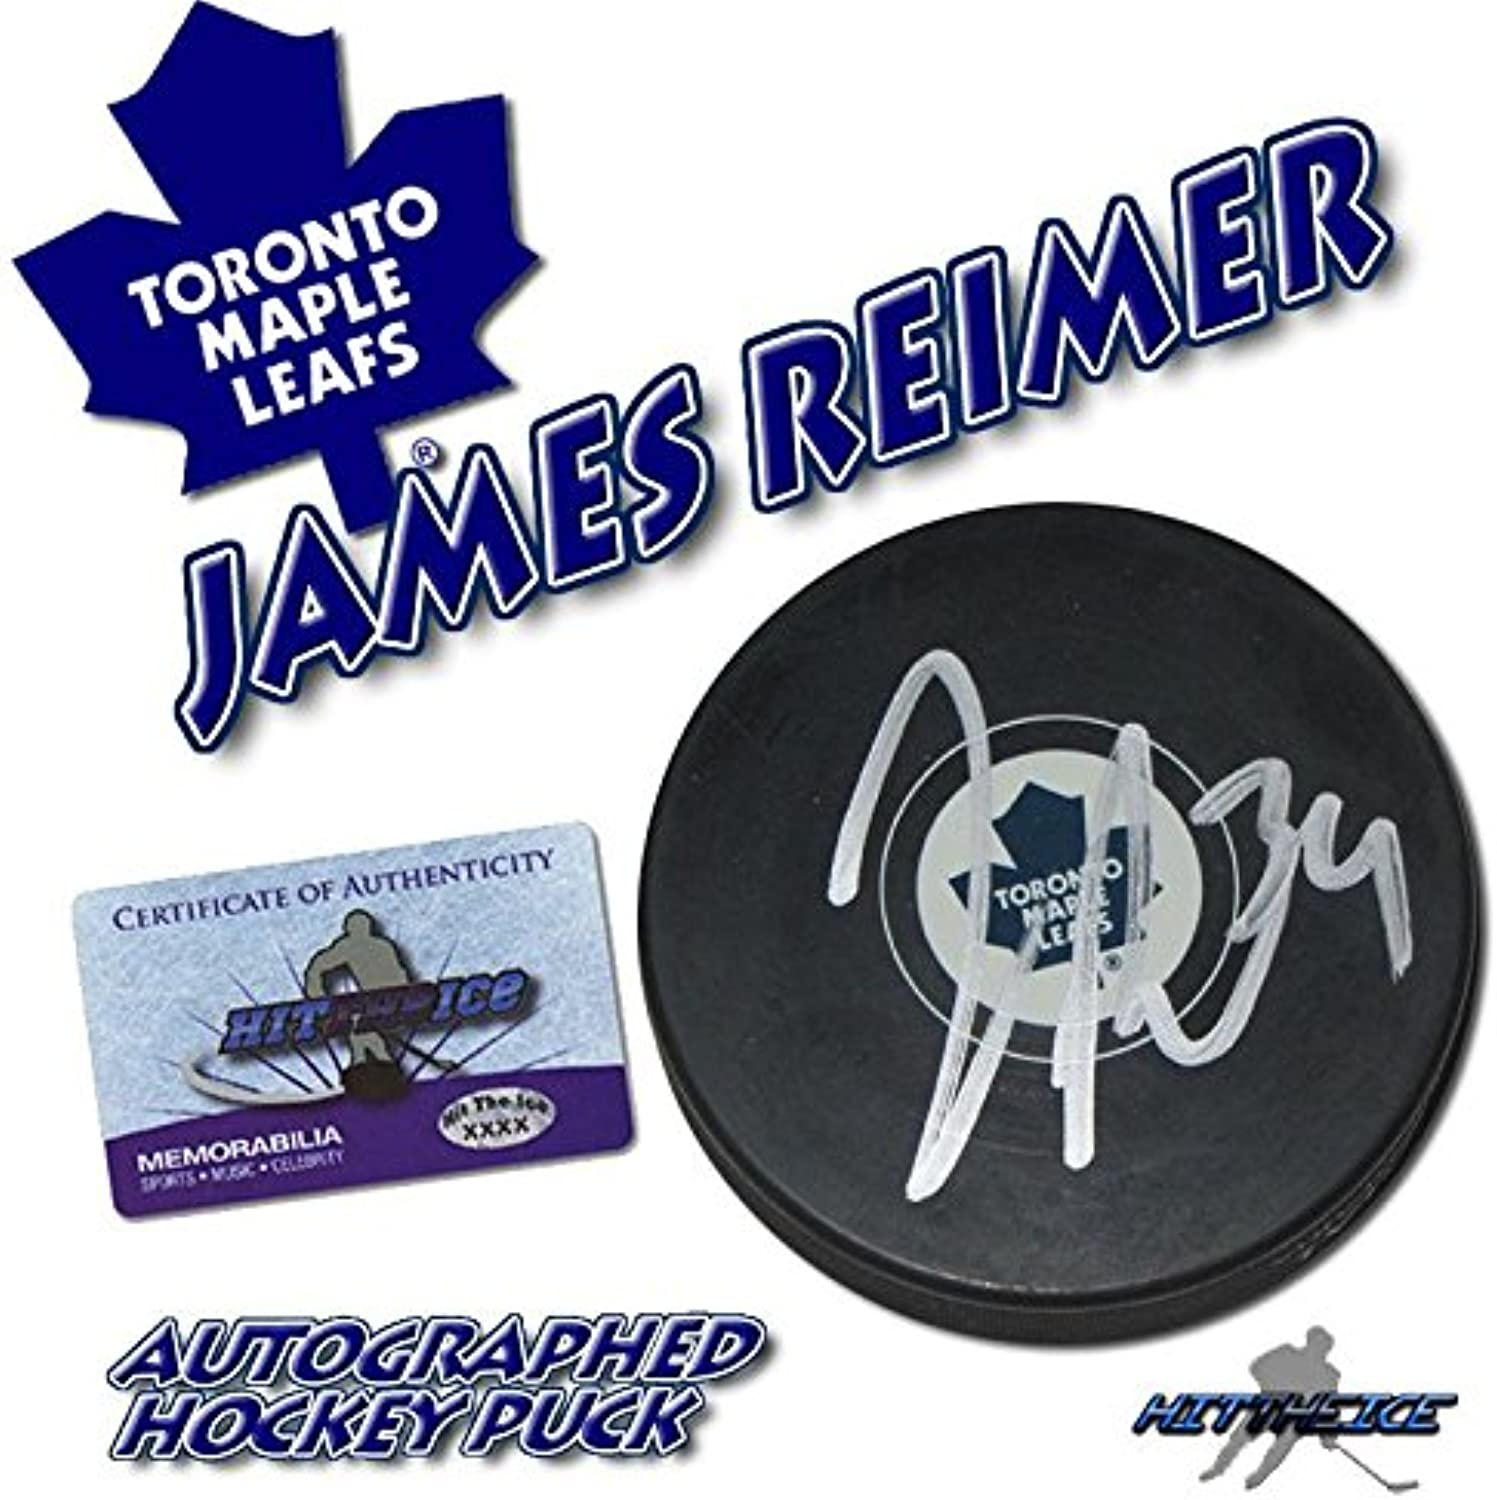 James REIMER Signed Tgoldnto Maple Leafs Puck w COA New  4  Autographed NHL Pucks